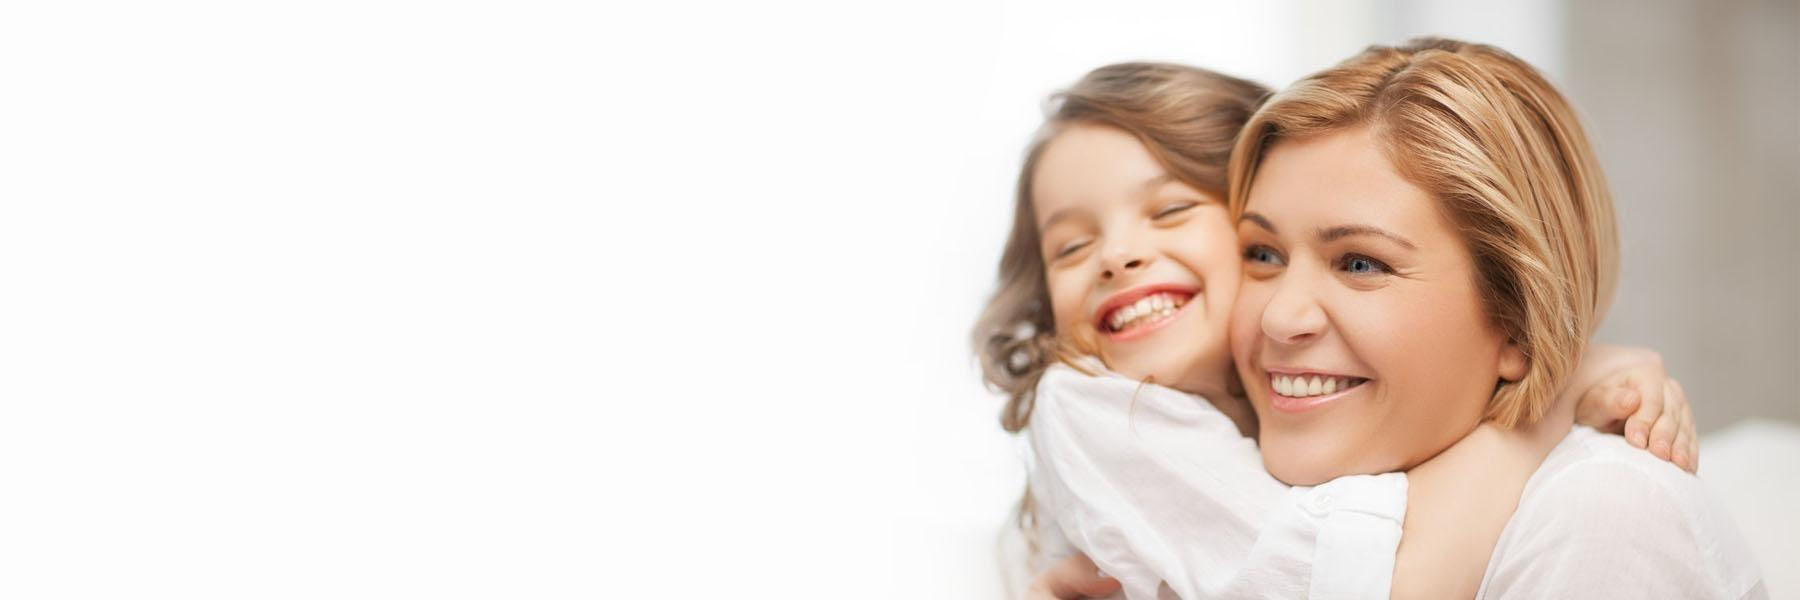 kids dentist maryland heights mo